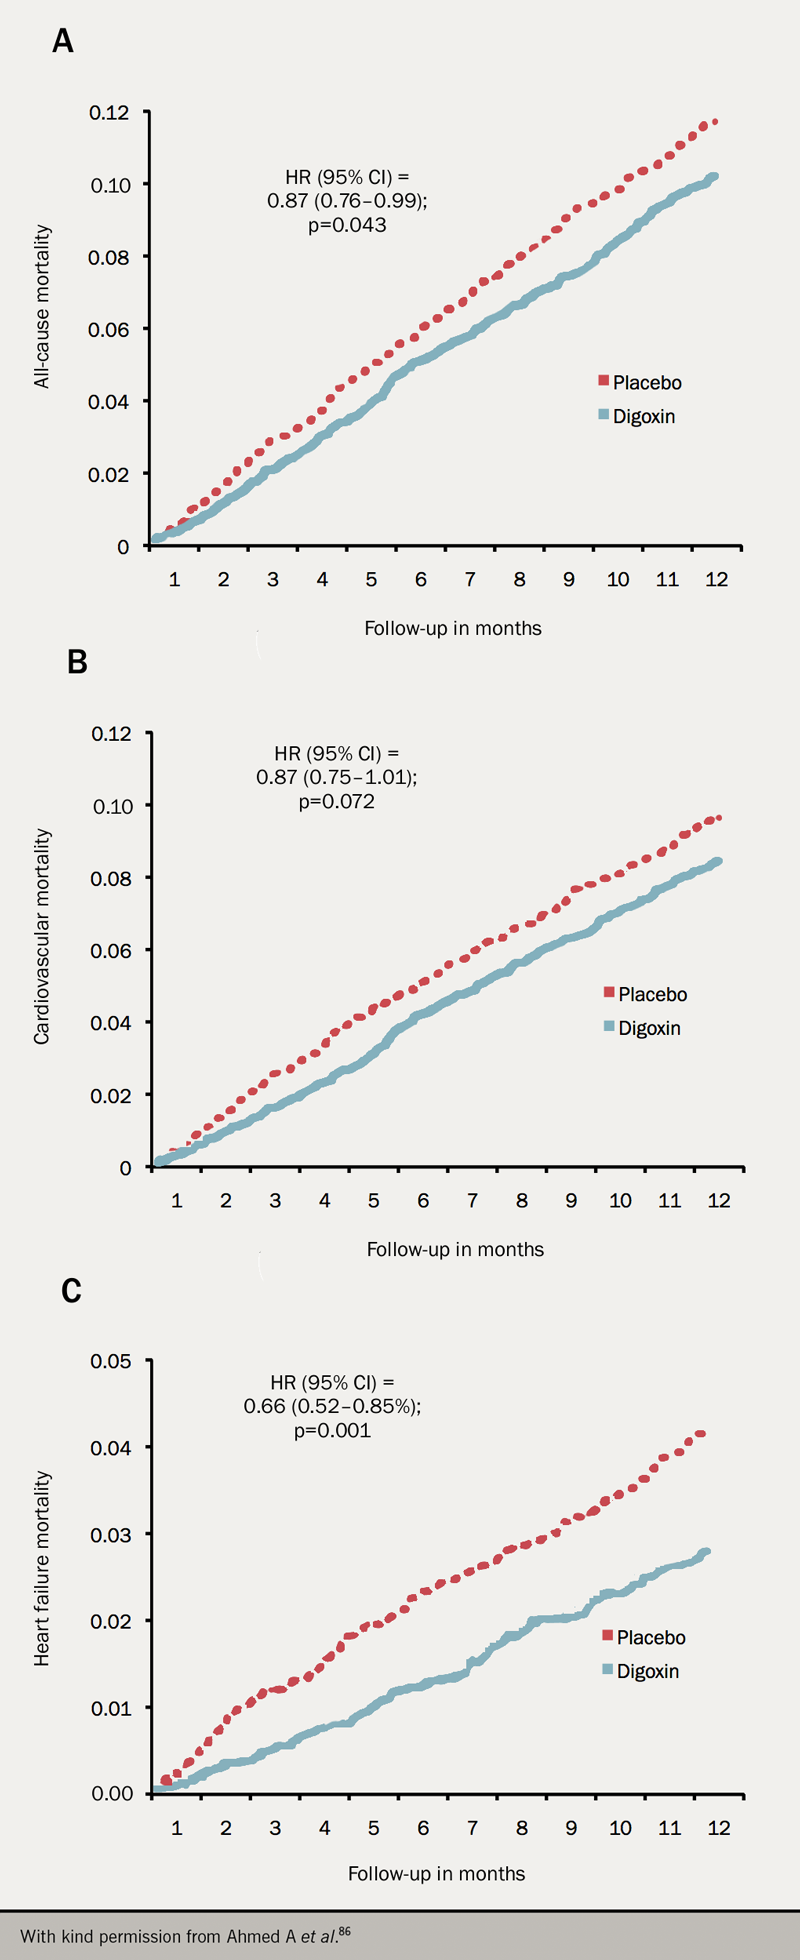 Heart failure module 3 - Figure 6. Effectiveness of digoxin in reducing one-year mortality in chronic heart failure in the Digitalis Investigation Group trial